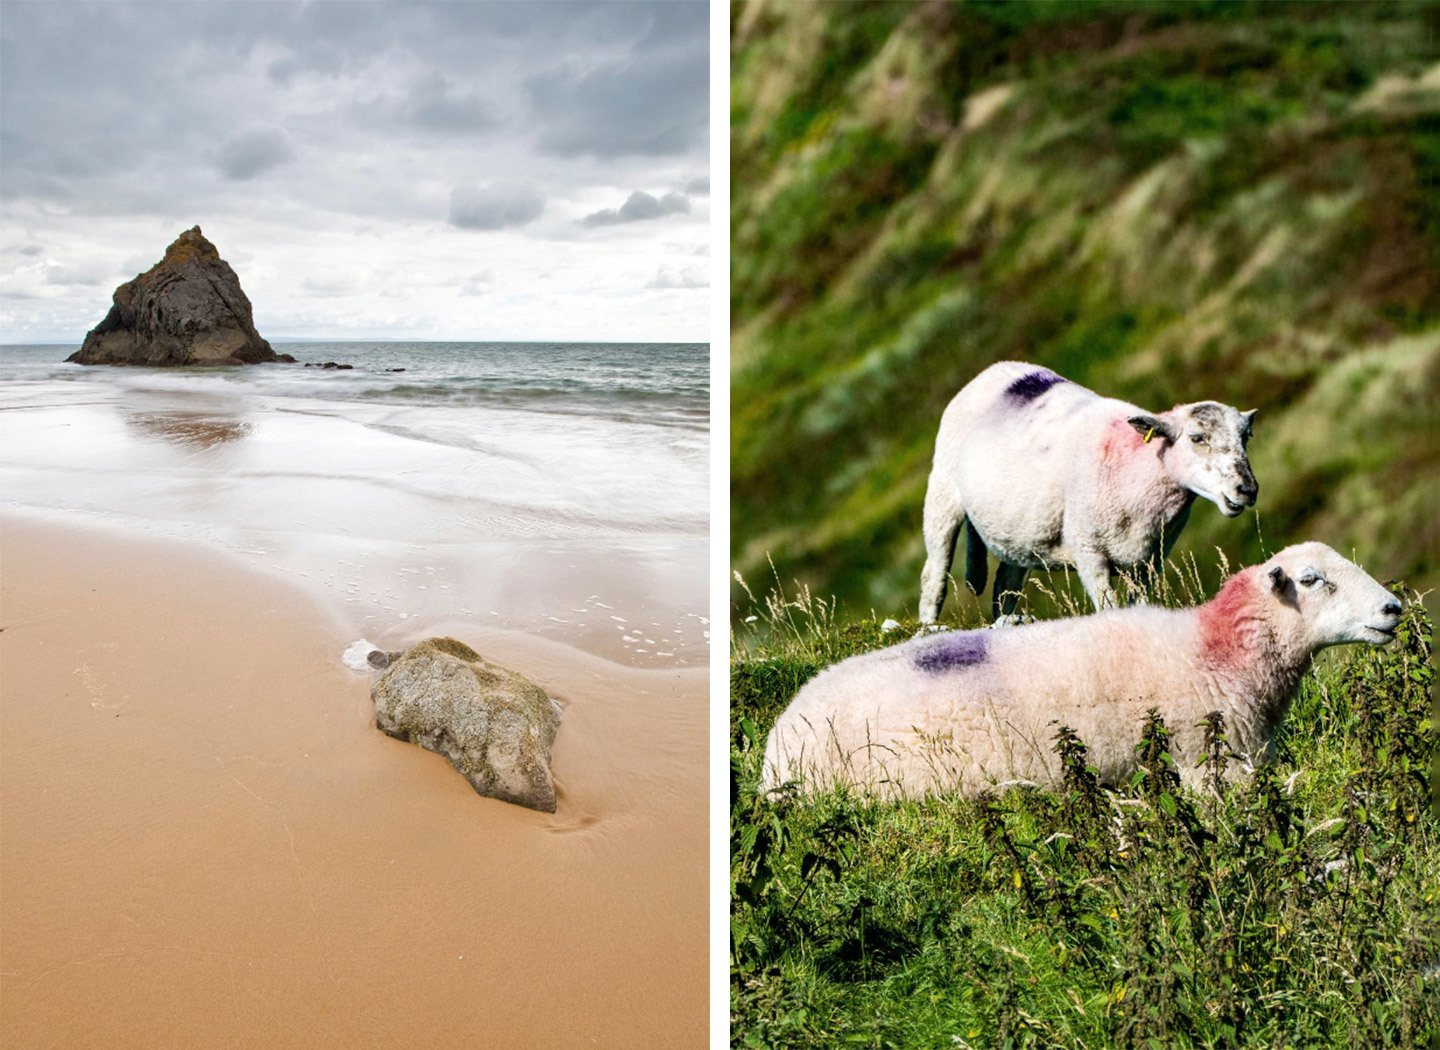 Beaches and sheep on the Gower Peninsula in South Wales